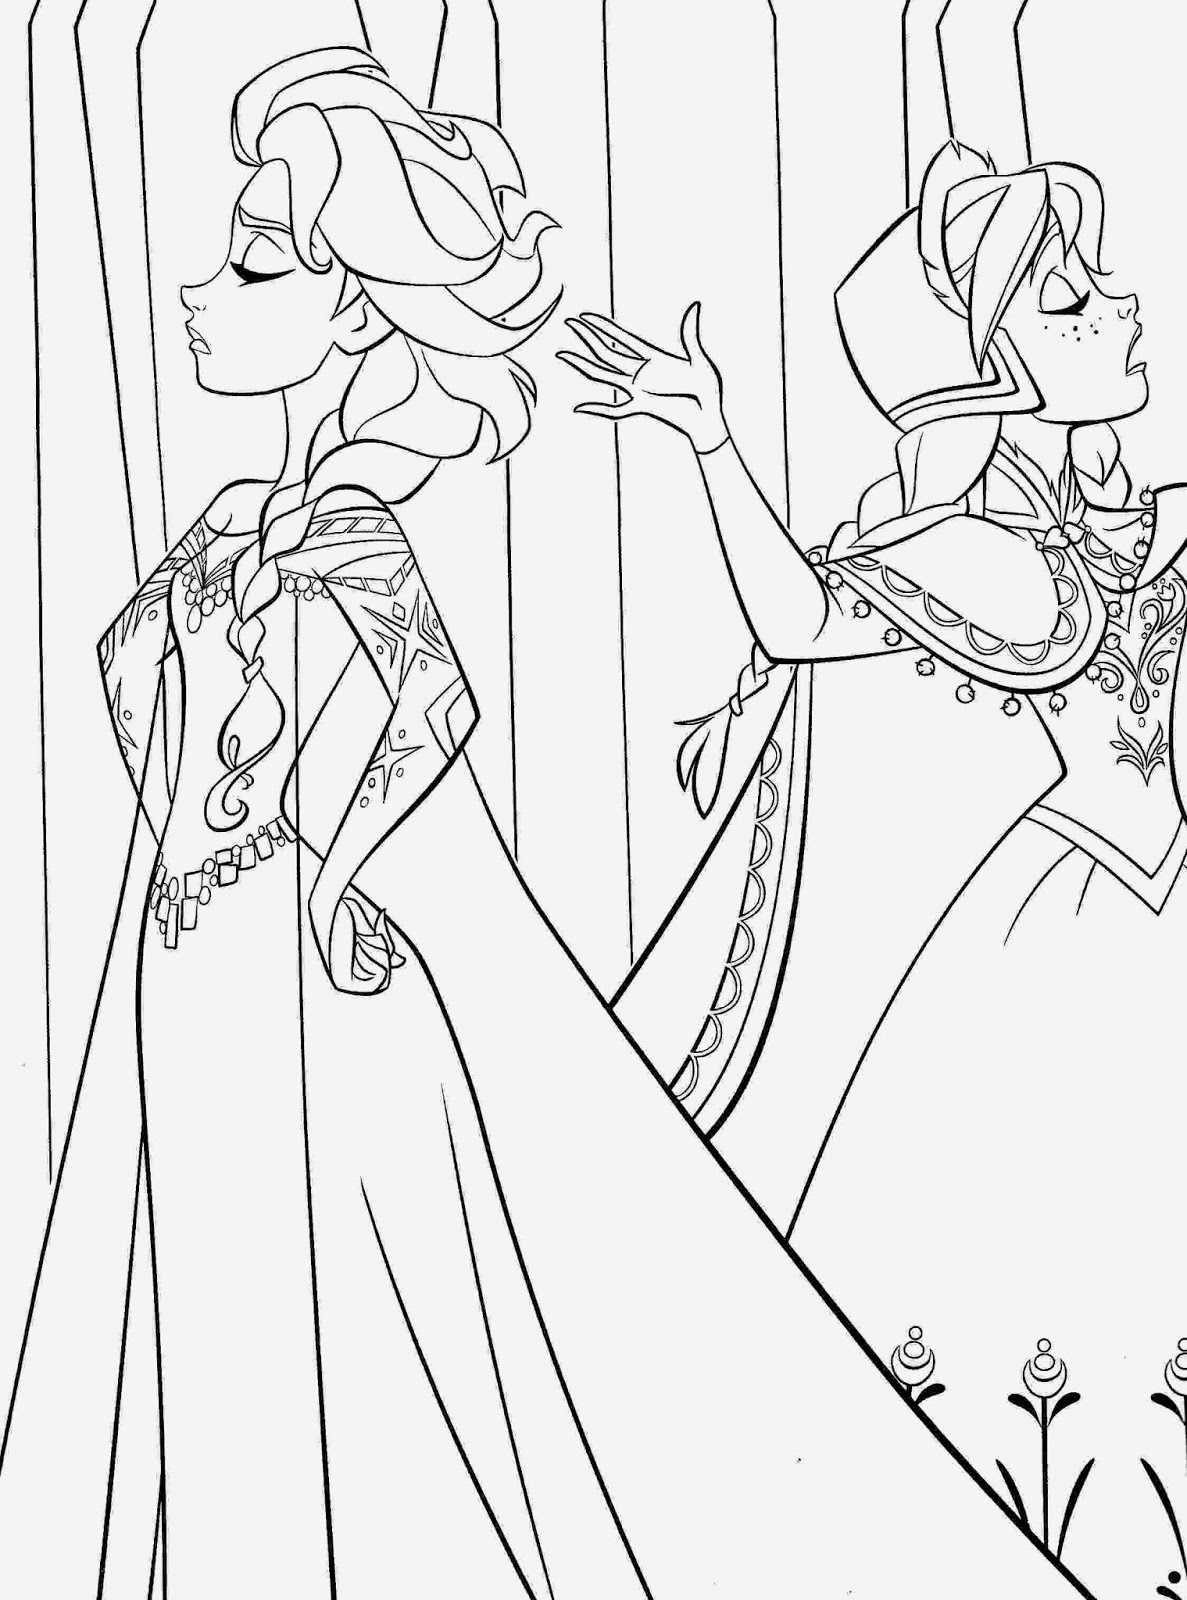 frozen colouring in sheets disney movie princesses quotfrozenquot printable coloring pages in frozen sheets colouring